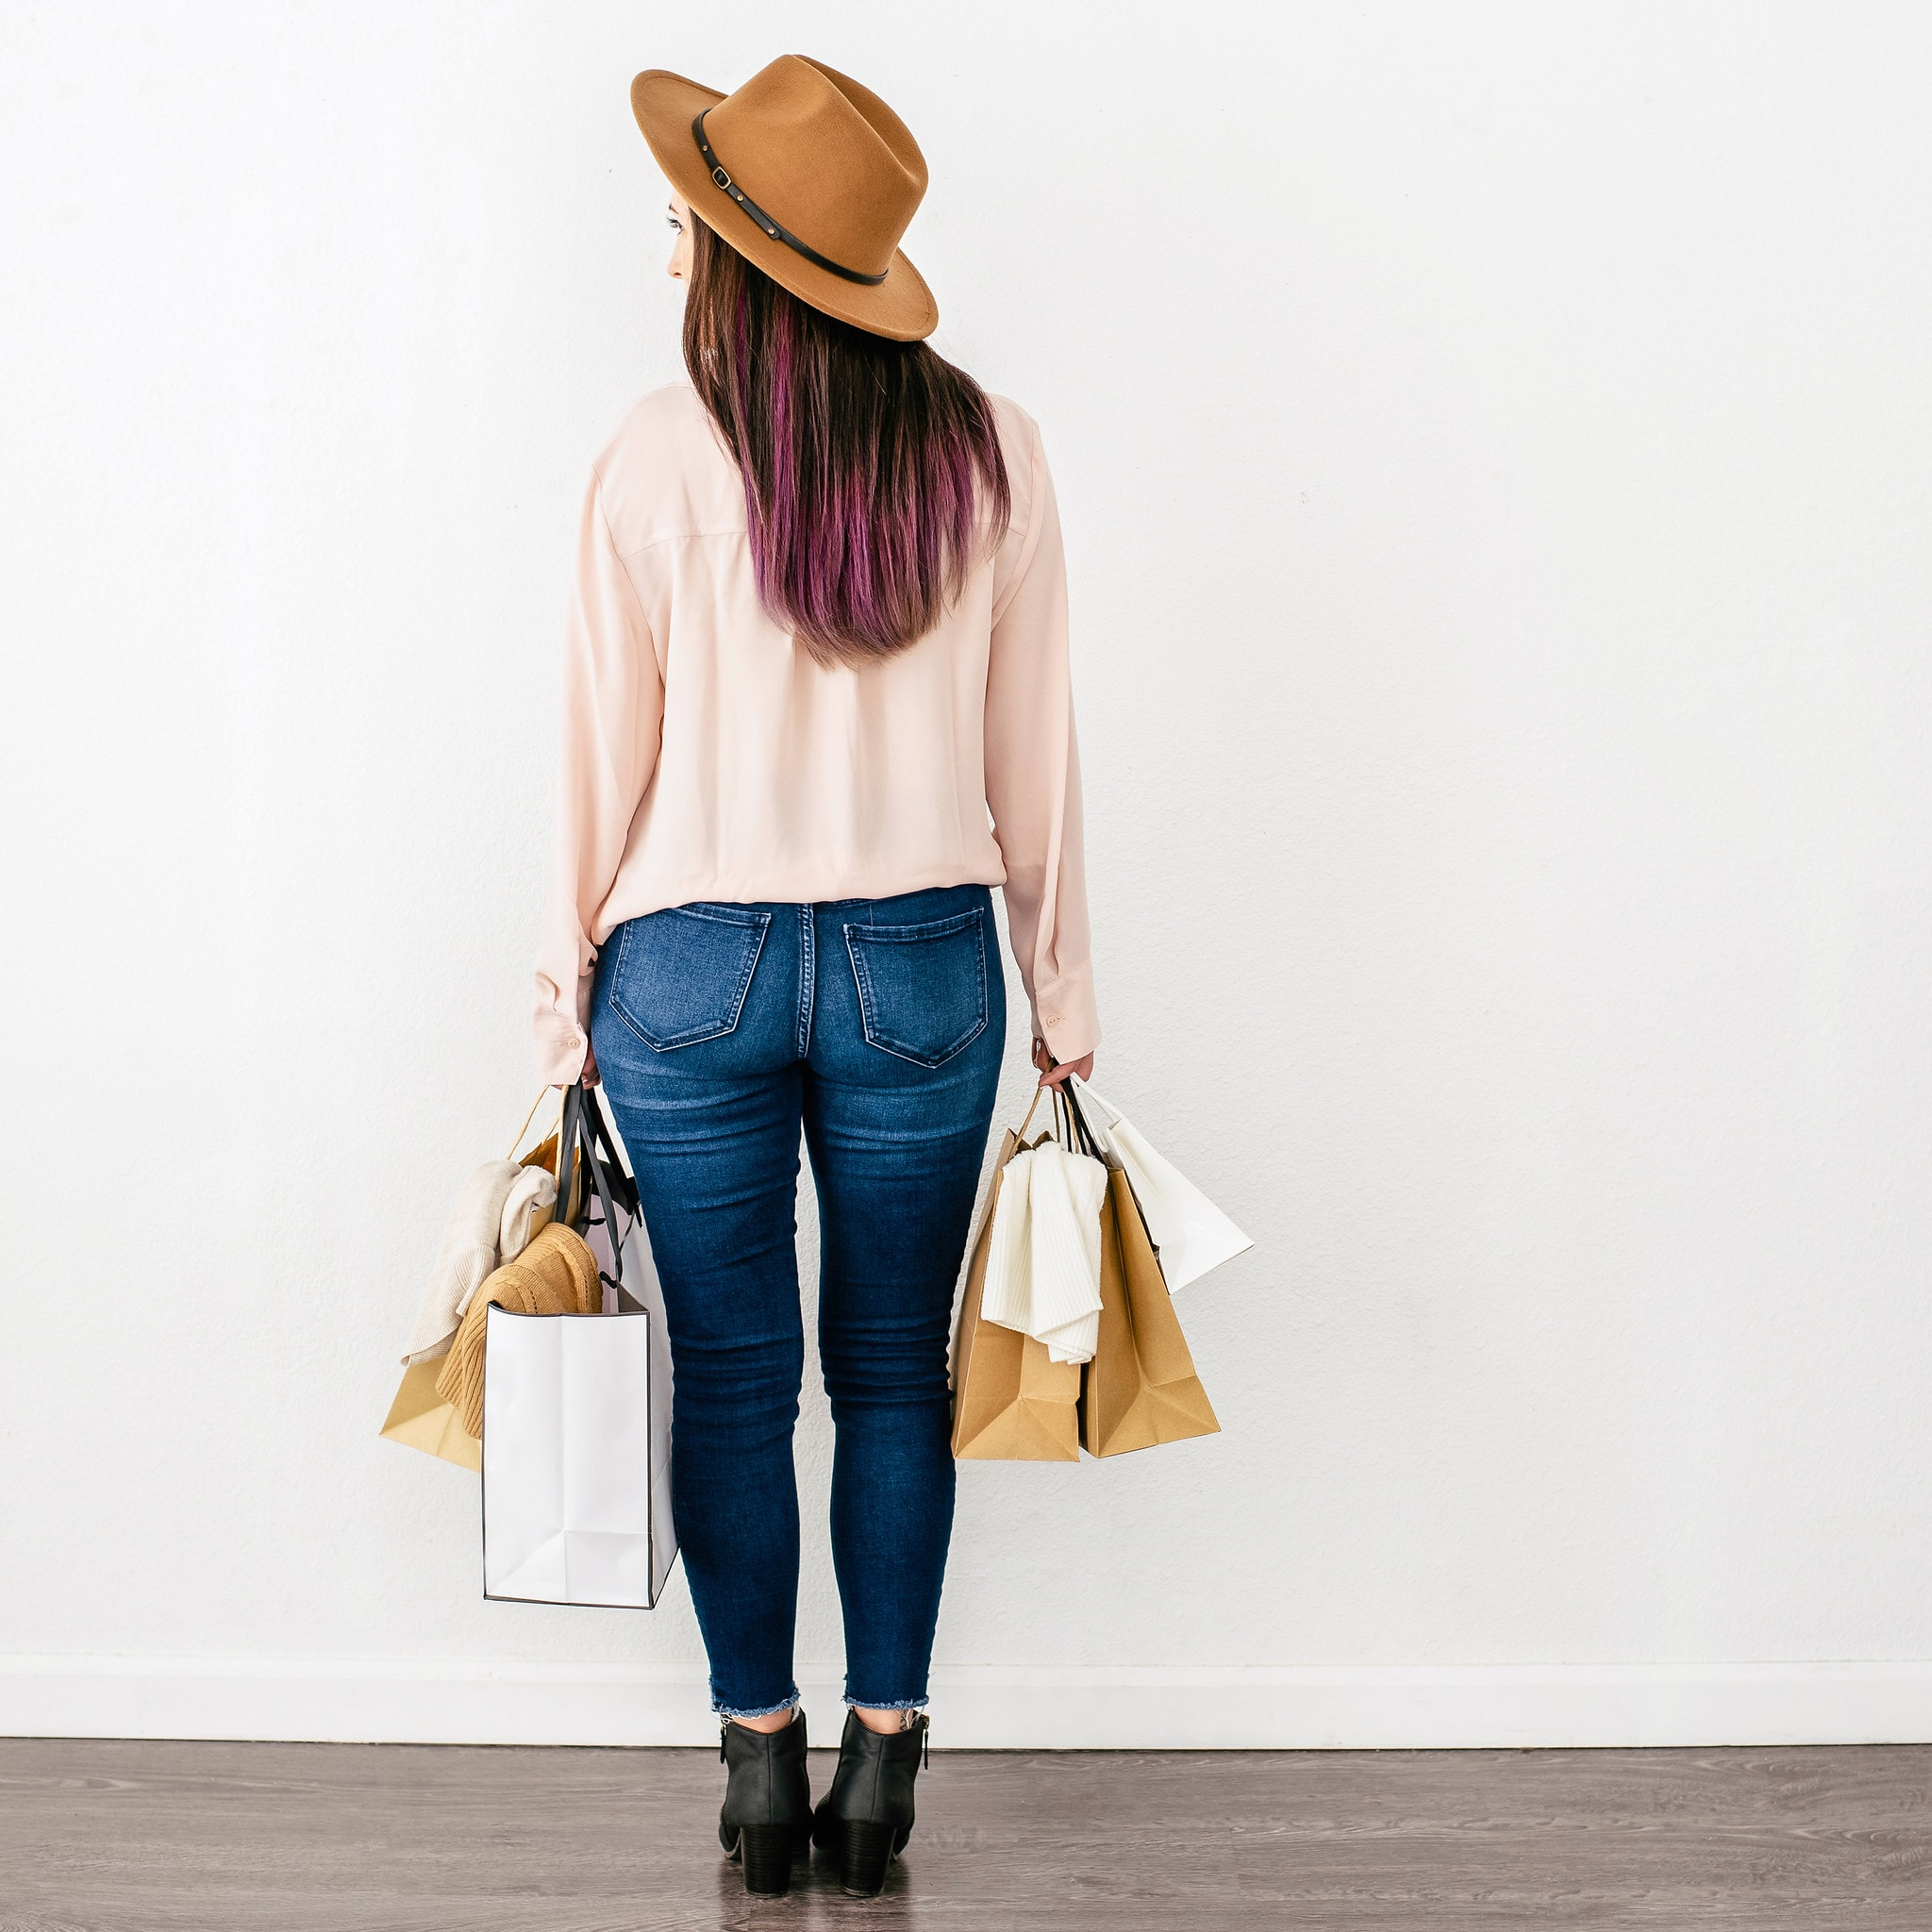 How To Start A Successful Clothing Business